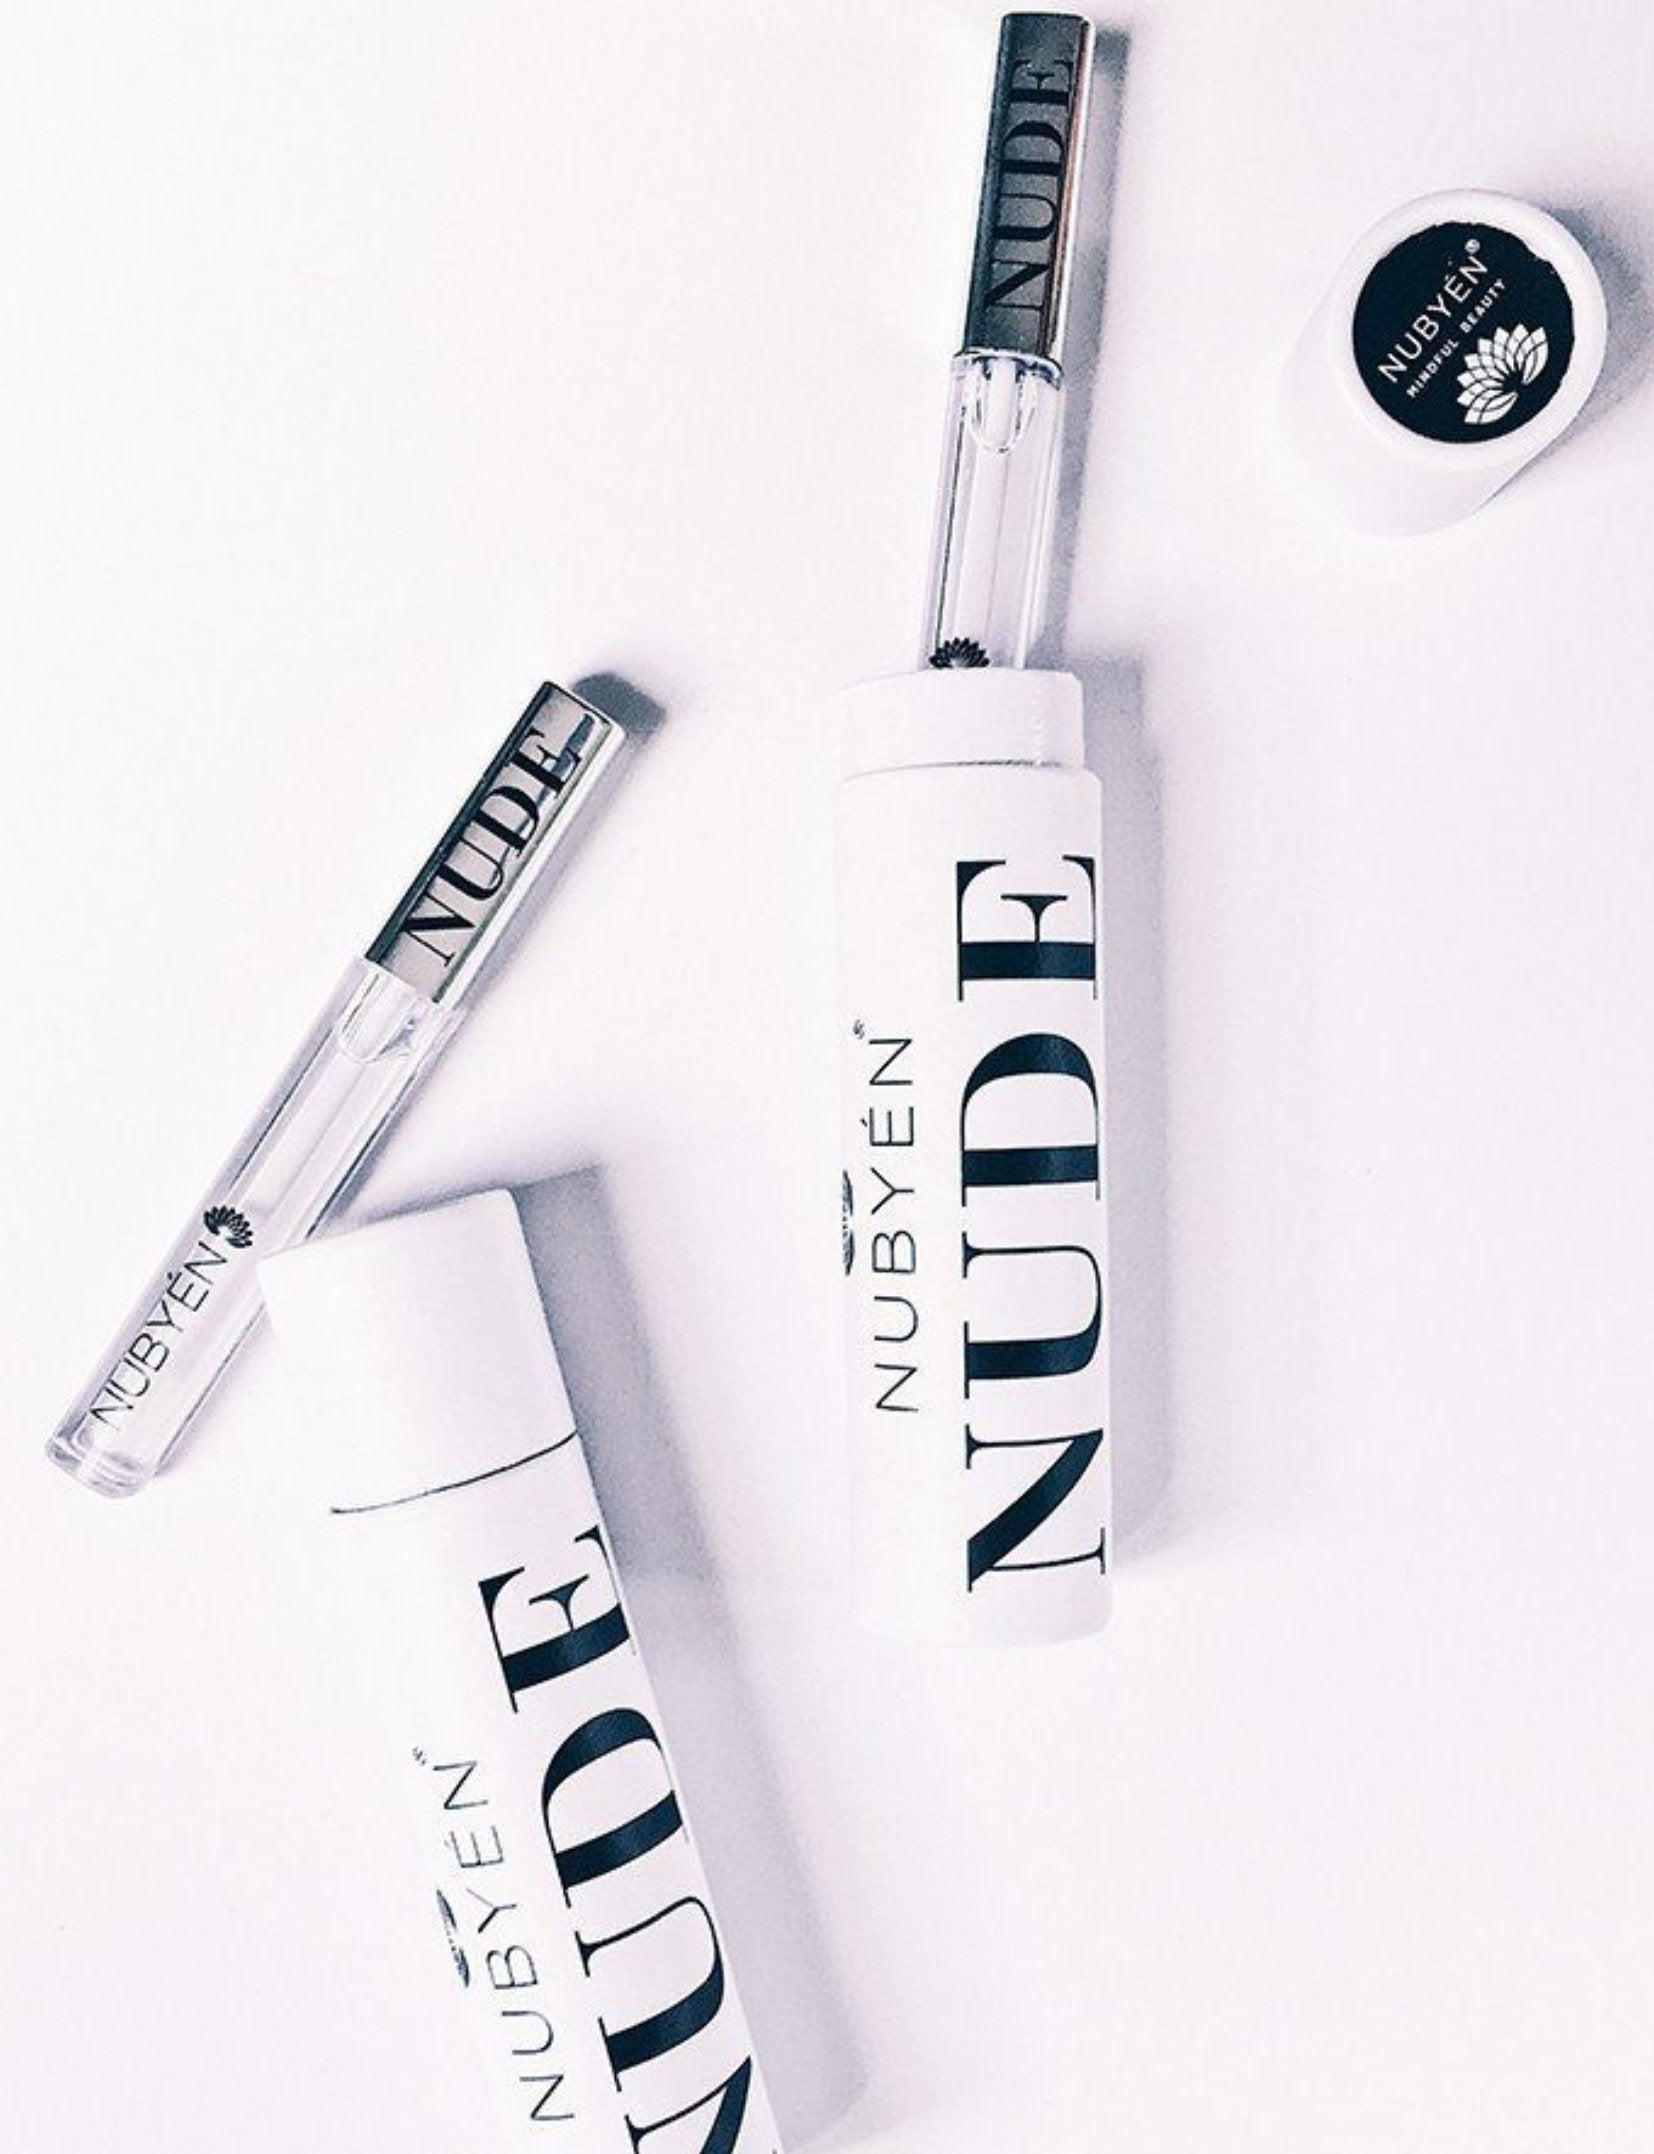 This Lip plumping gloss Nubyen Nude, its our best selling vegan and cruelty free gloss for fuller lips instantly, has natural ingredients such as collagen & hyaluronic acid, best lip plumping lipgloss, best lip plumper, lip filler, full lips, lip injections, plump it, to faced lip injection, nubyen nude Charlotte tilbury collagen lip plumper, too faced lip injection, dior addict lip maximiser, code lip intense plumper, buxum lip plumper, plump it lip plumper